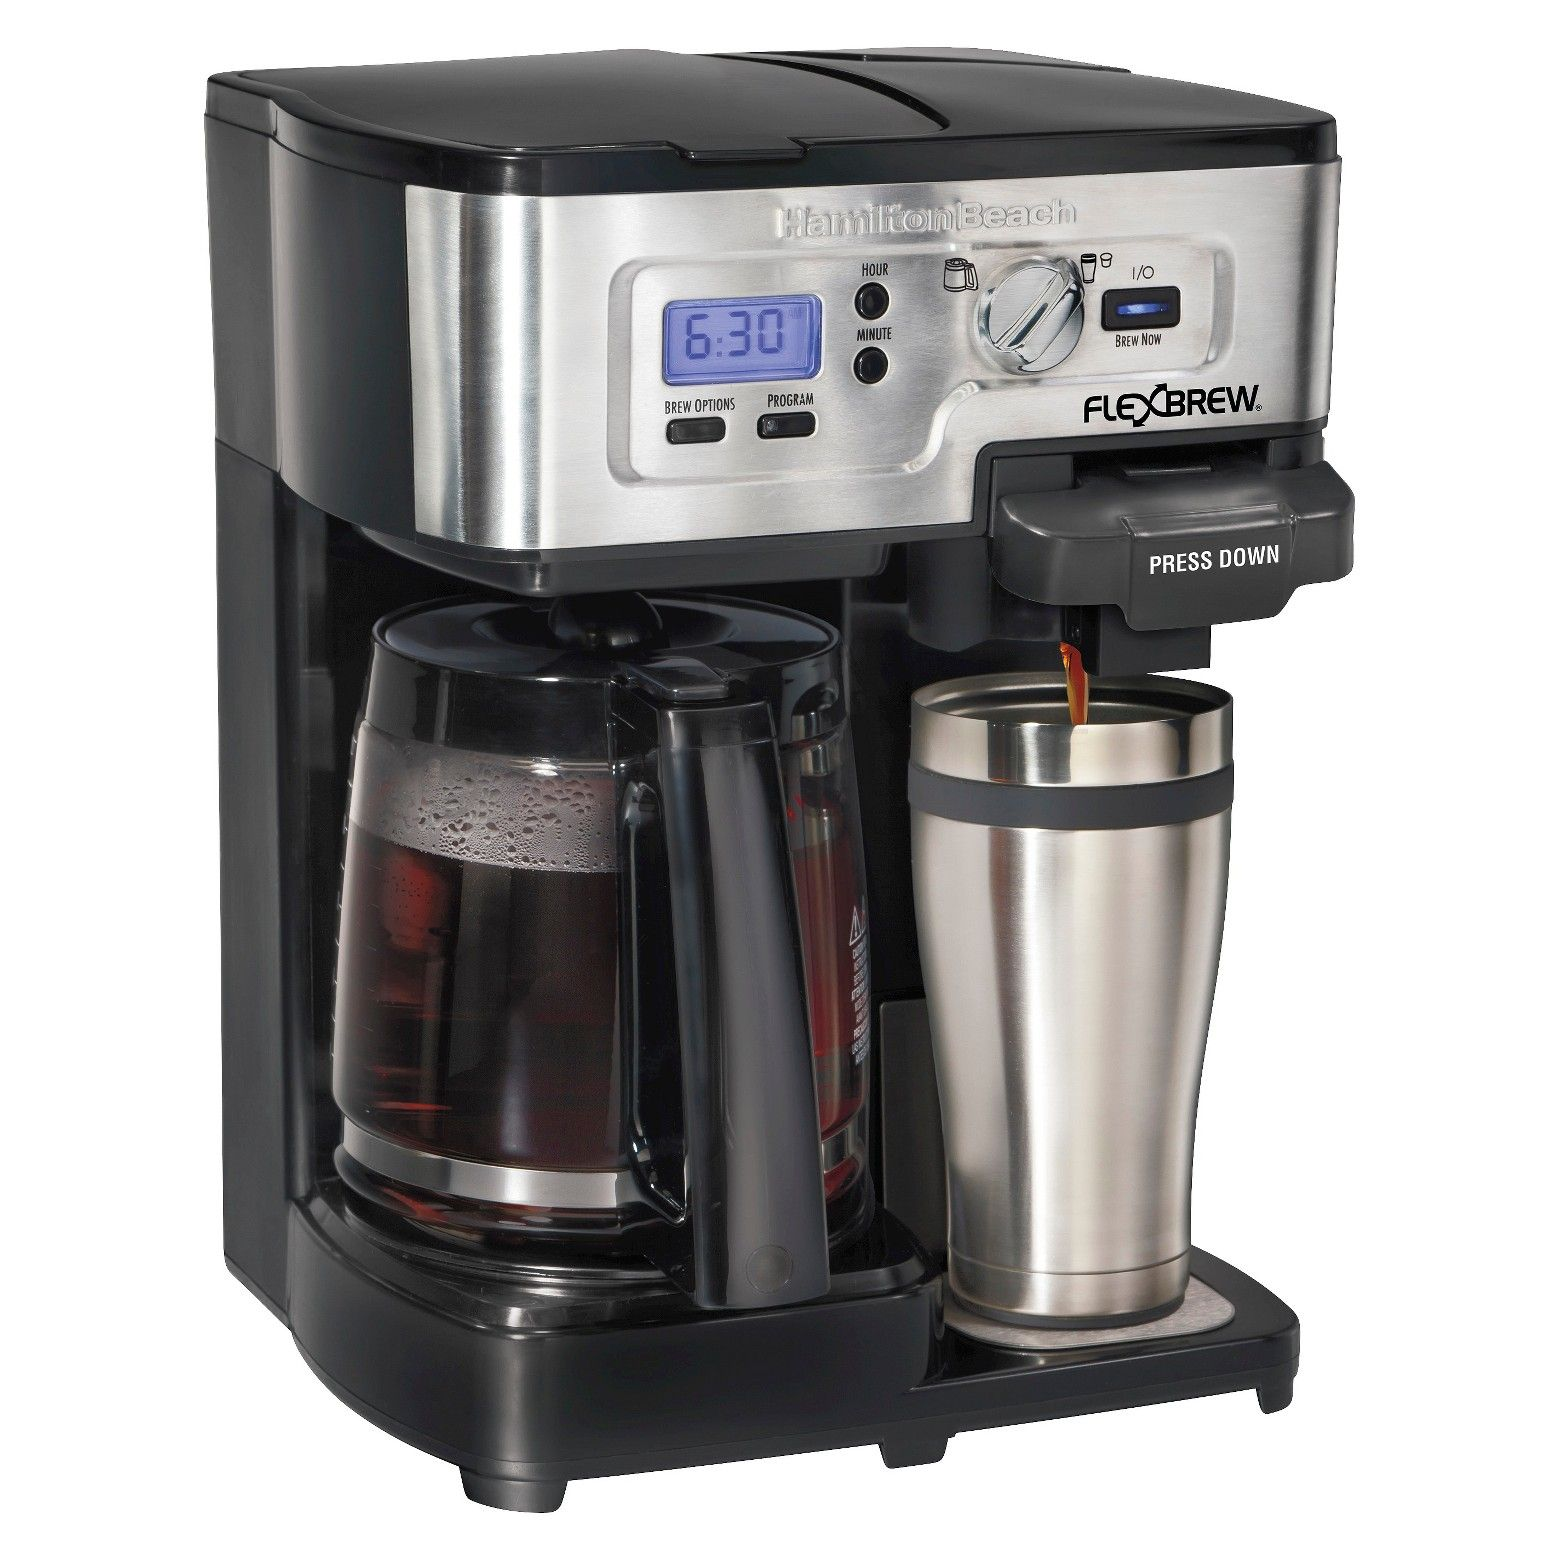 The 2Way FlexBrew® Coffeemaker maximizes your brewing